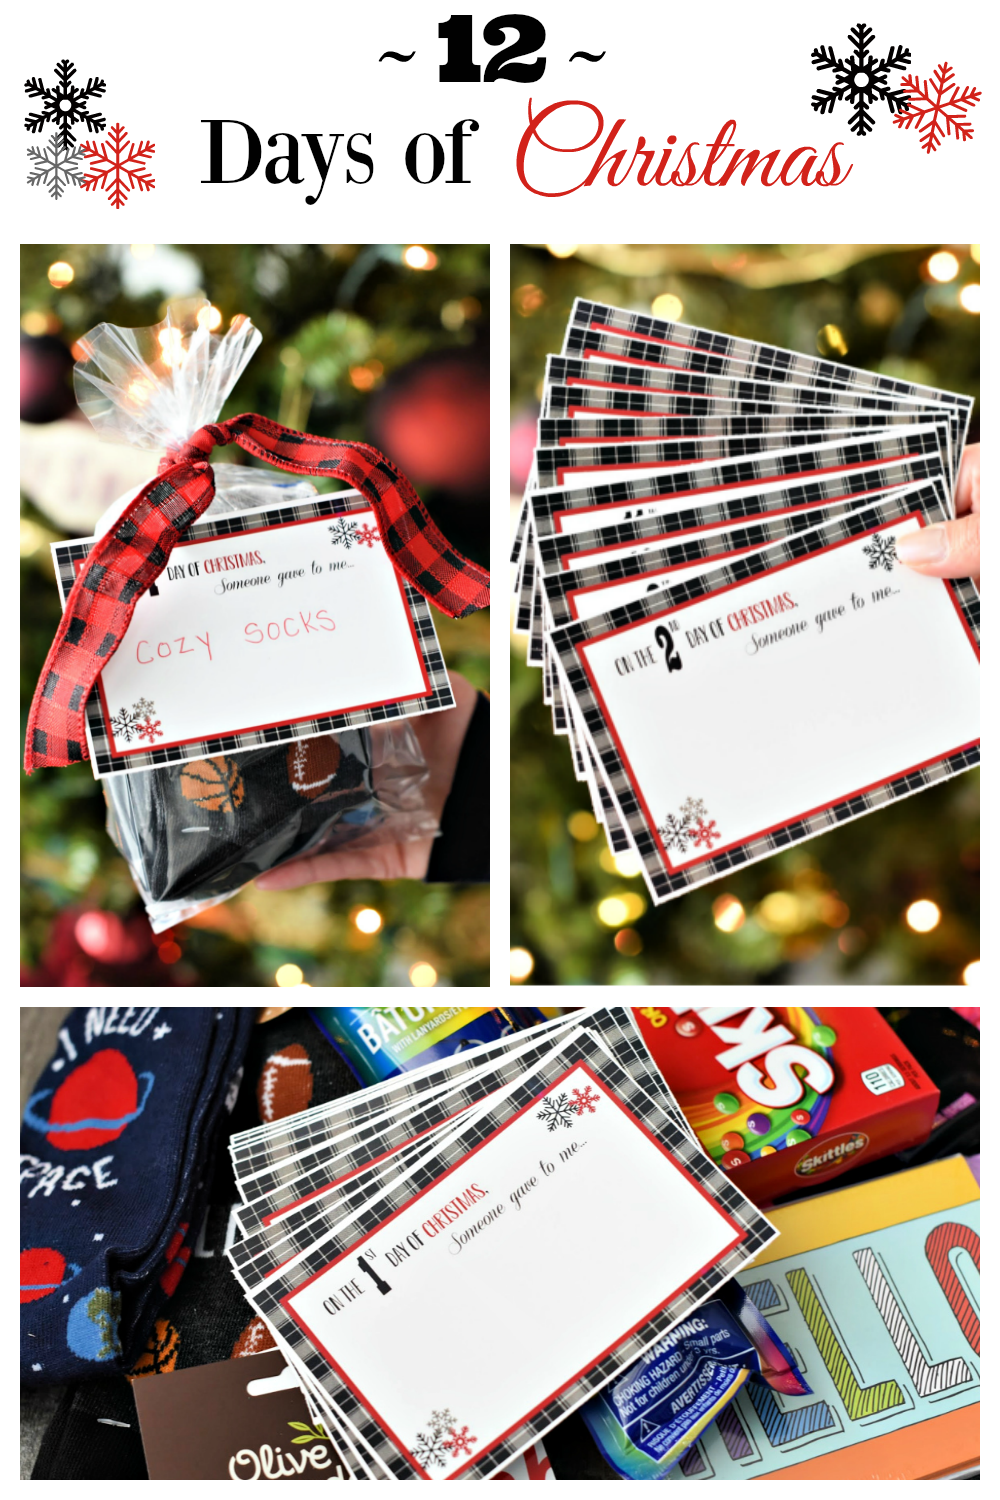 Fun 12 Days of Christmas Ideas! Spread the joy of Christmas with these fun 12 Days of Christmas ideas and free printables! So simple and such a great way to celebrate. #12daysofChristmas #Christmasgiftideas #12daysofchristmasideas